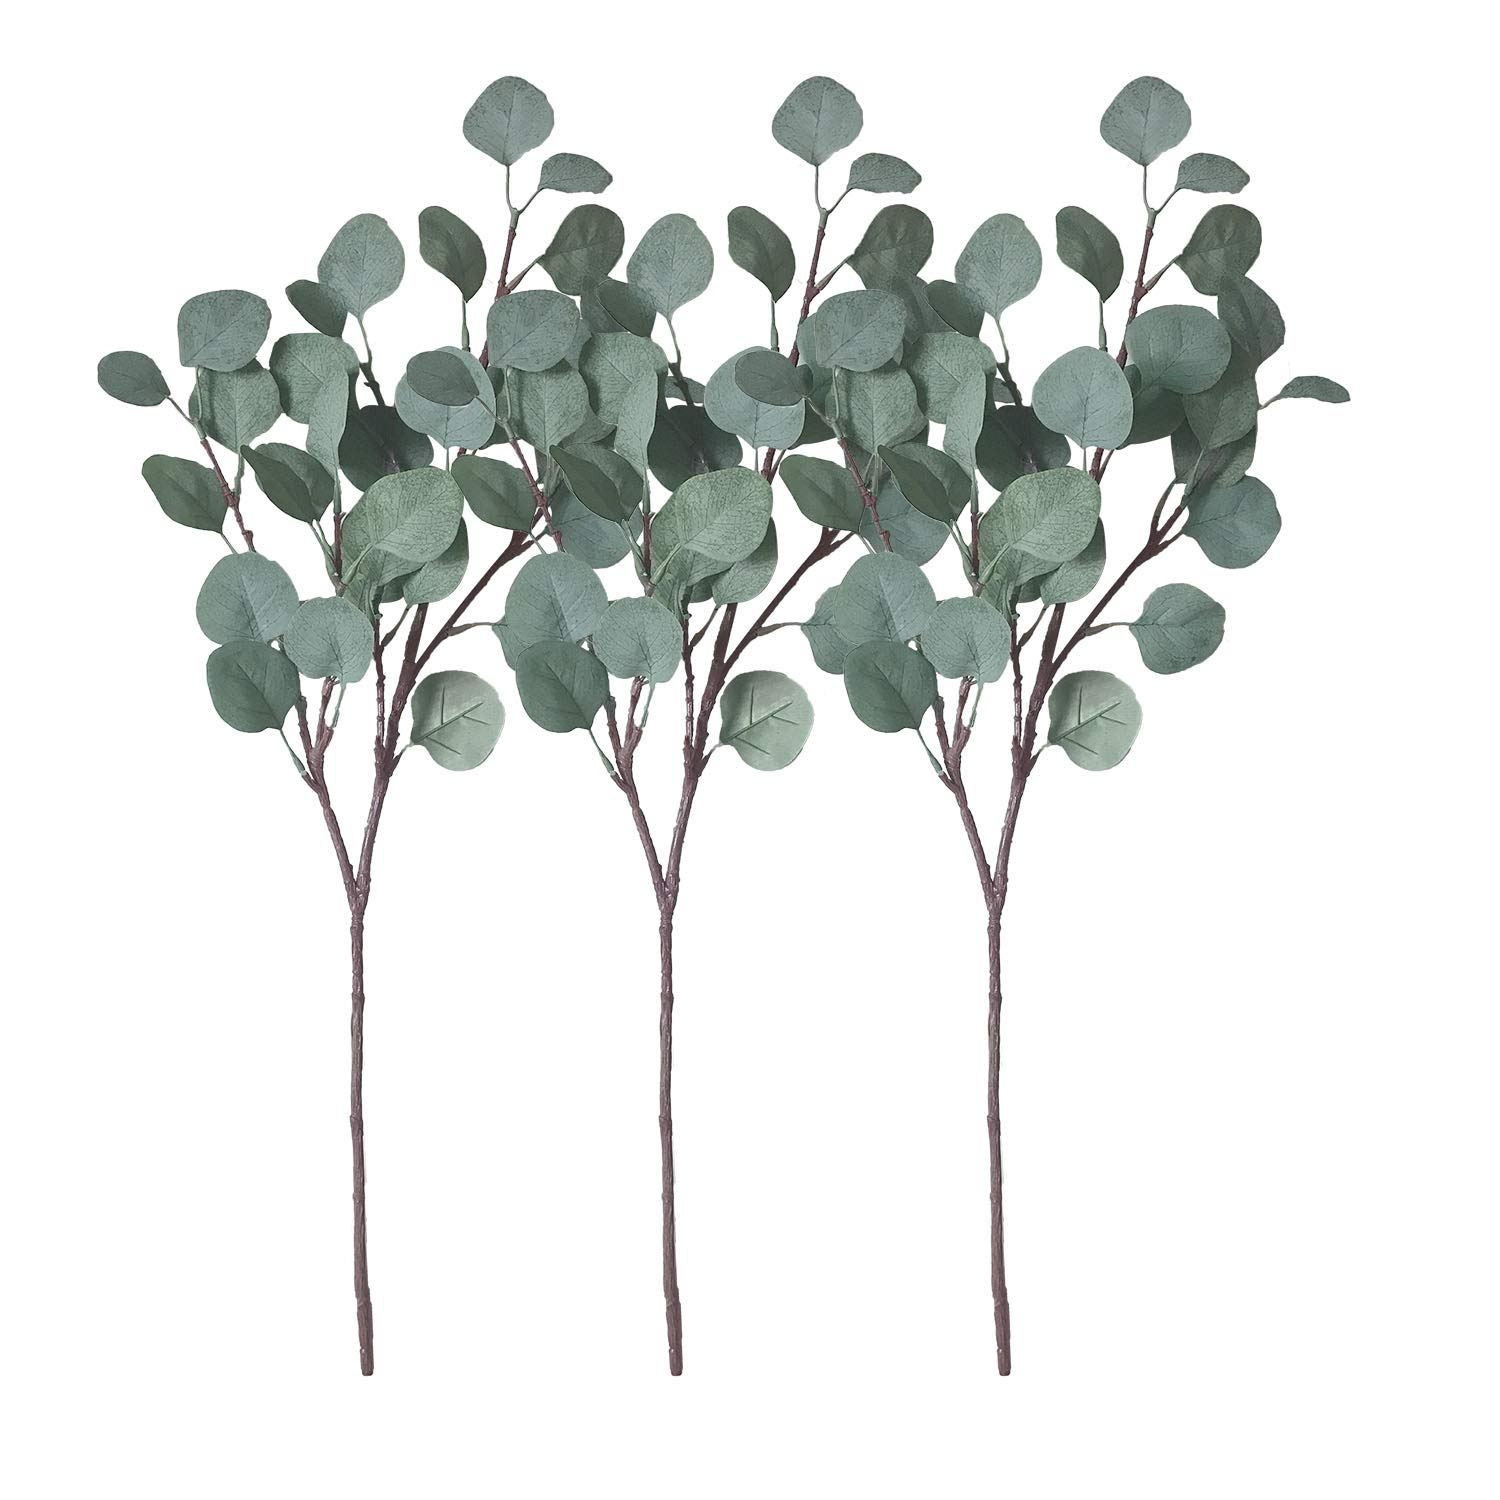 ZHIIHA 3 pcs Artificial Eucalyptus Garland Long Silver Dollar Leaves Foliage Plants Greenery Fake Plastic Branches Greens Bushes